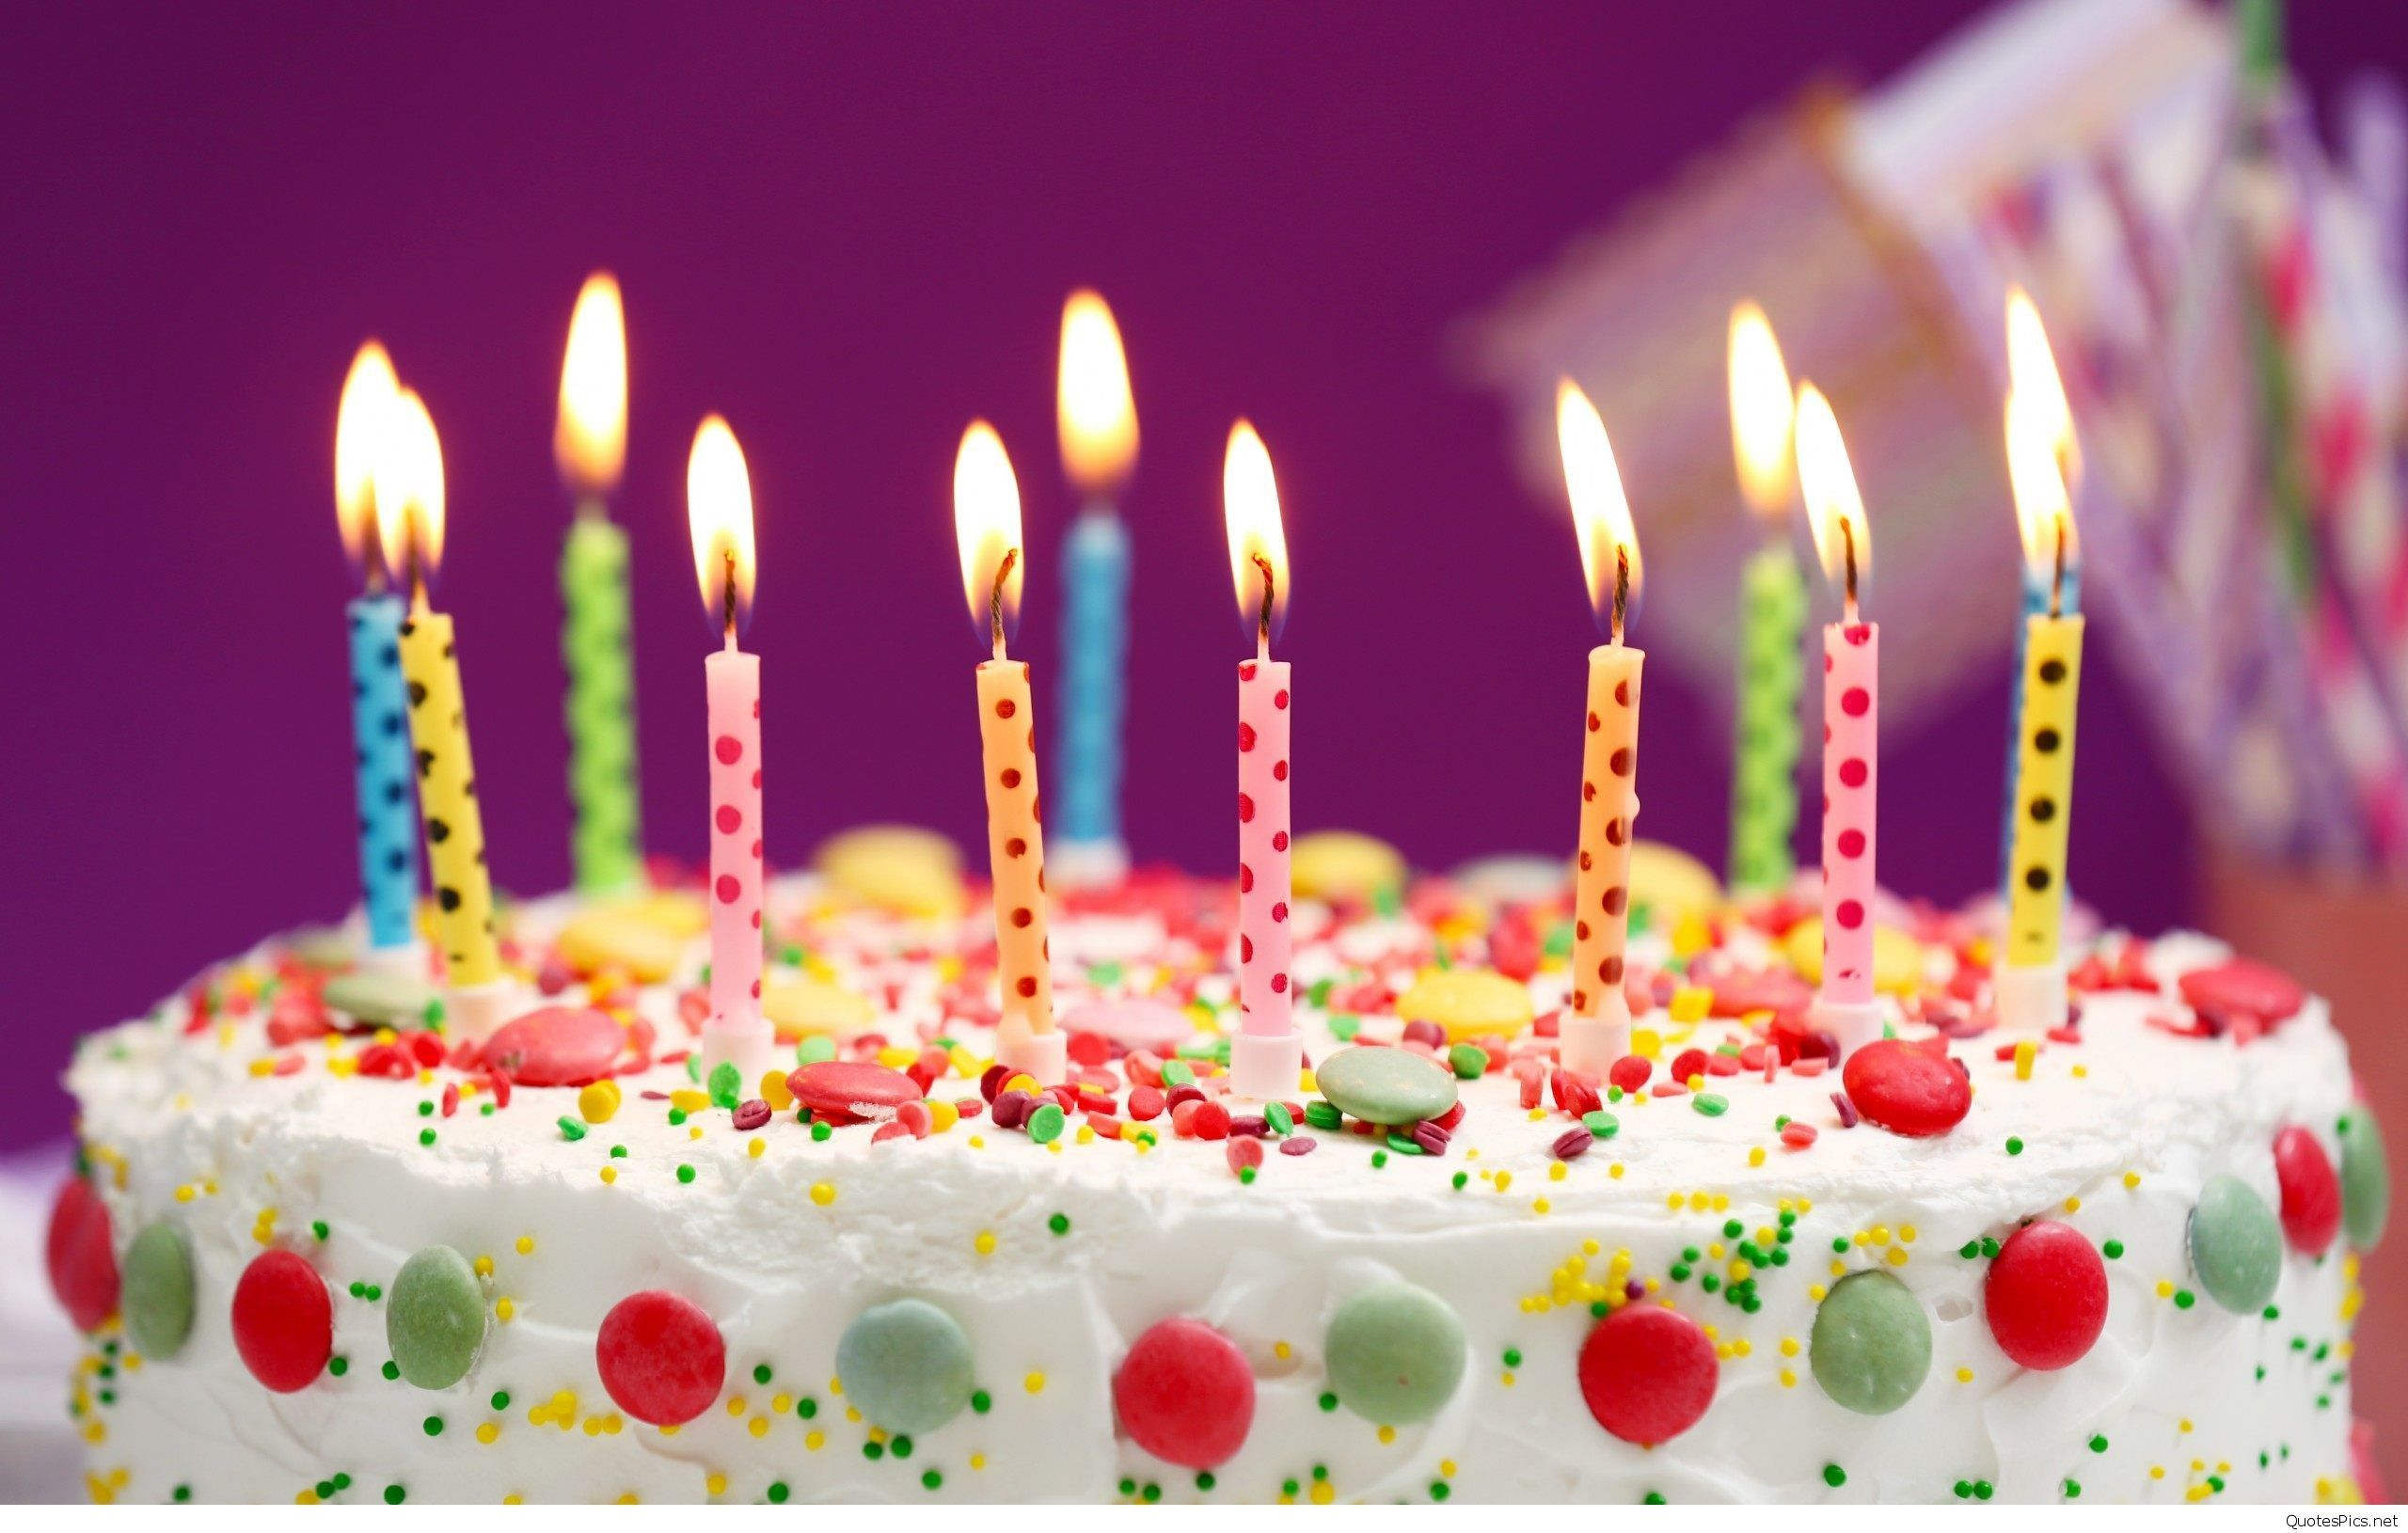 2560x1630 Happy Birthday Cake And Candles Wallpaper Happy Birthday Cakes Happy Birthday Cake Images Birthday Cake Hd